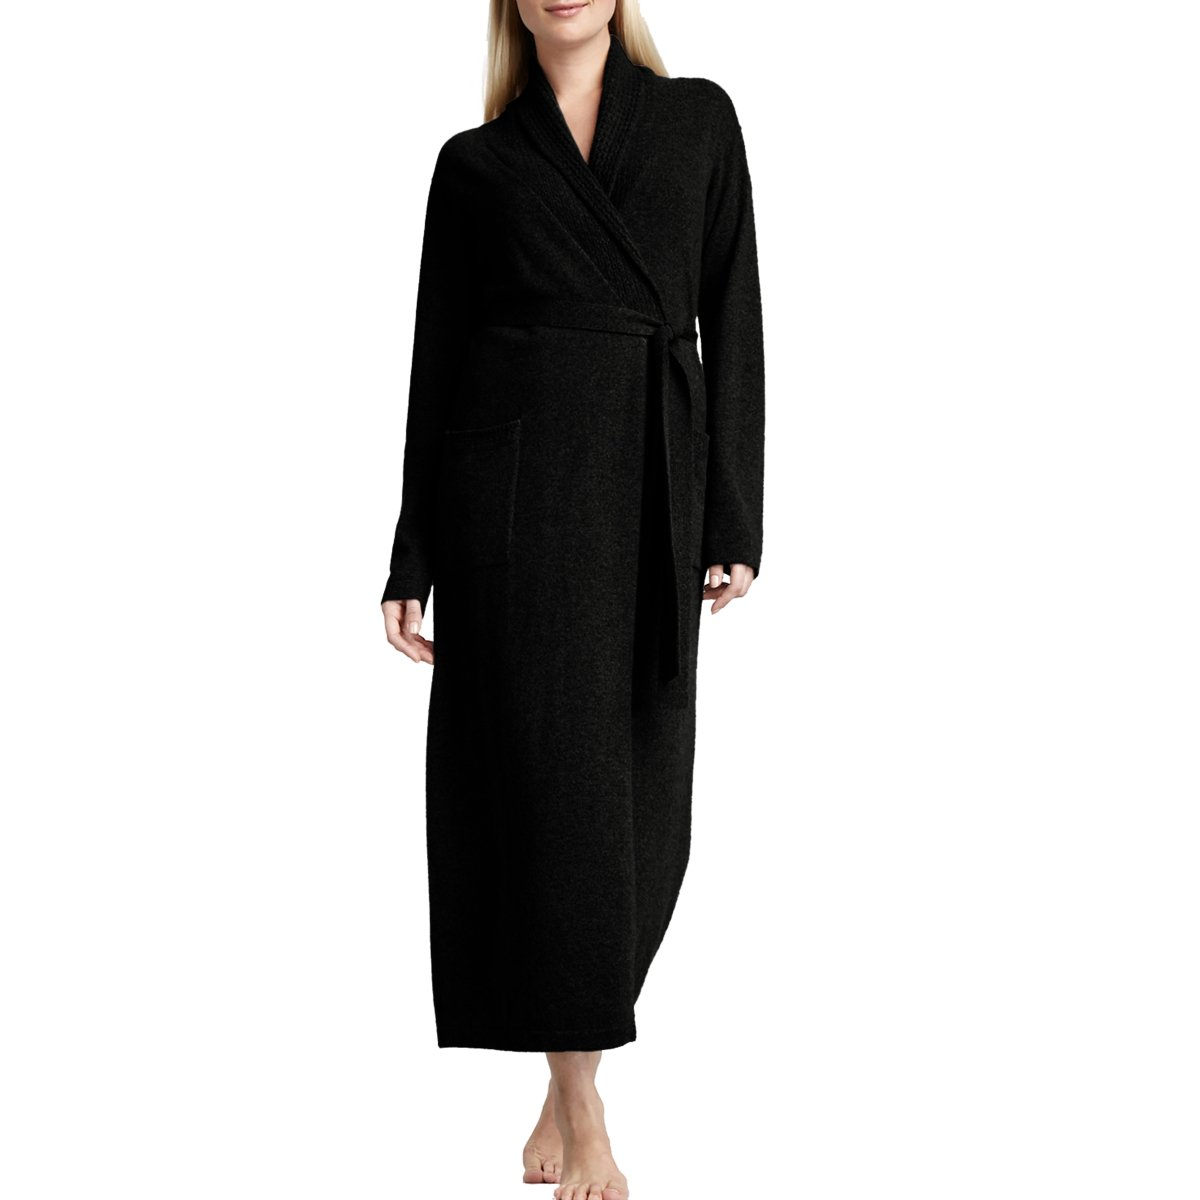 Parisbonbon Women's 100% Cashmere Shawl Collar Bathrobes Color Black Size L by Parisbonbon